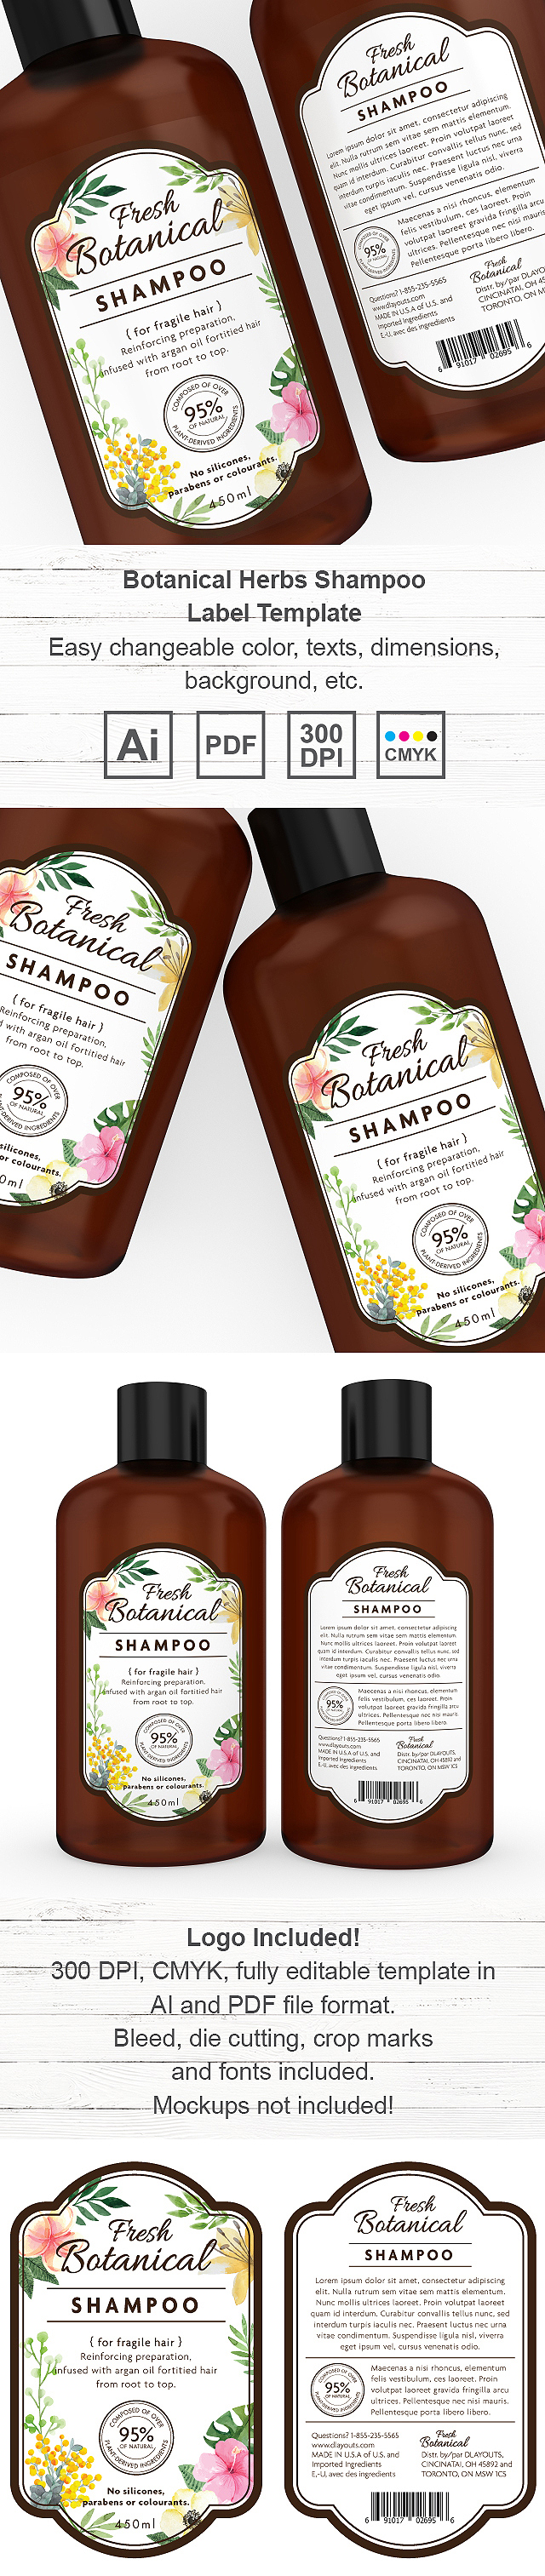 Botanical Herbs Shampoo Label Template